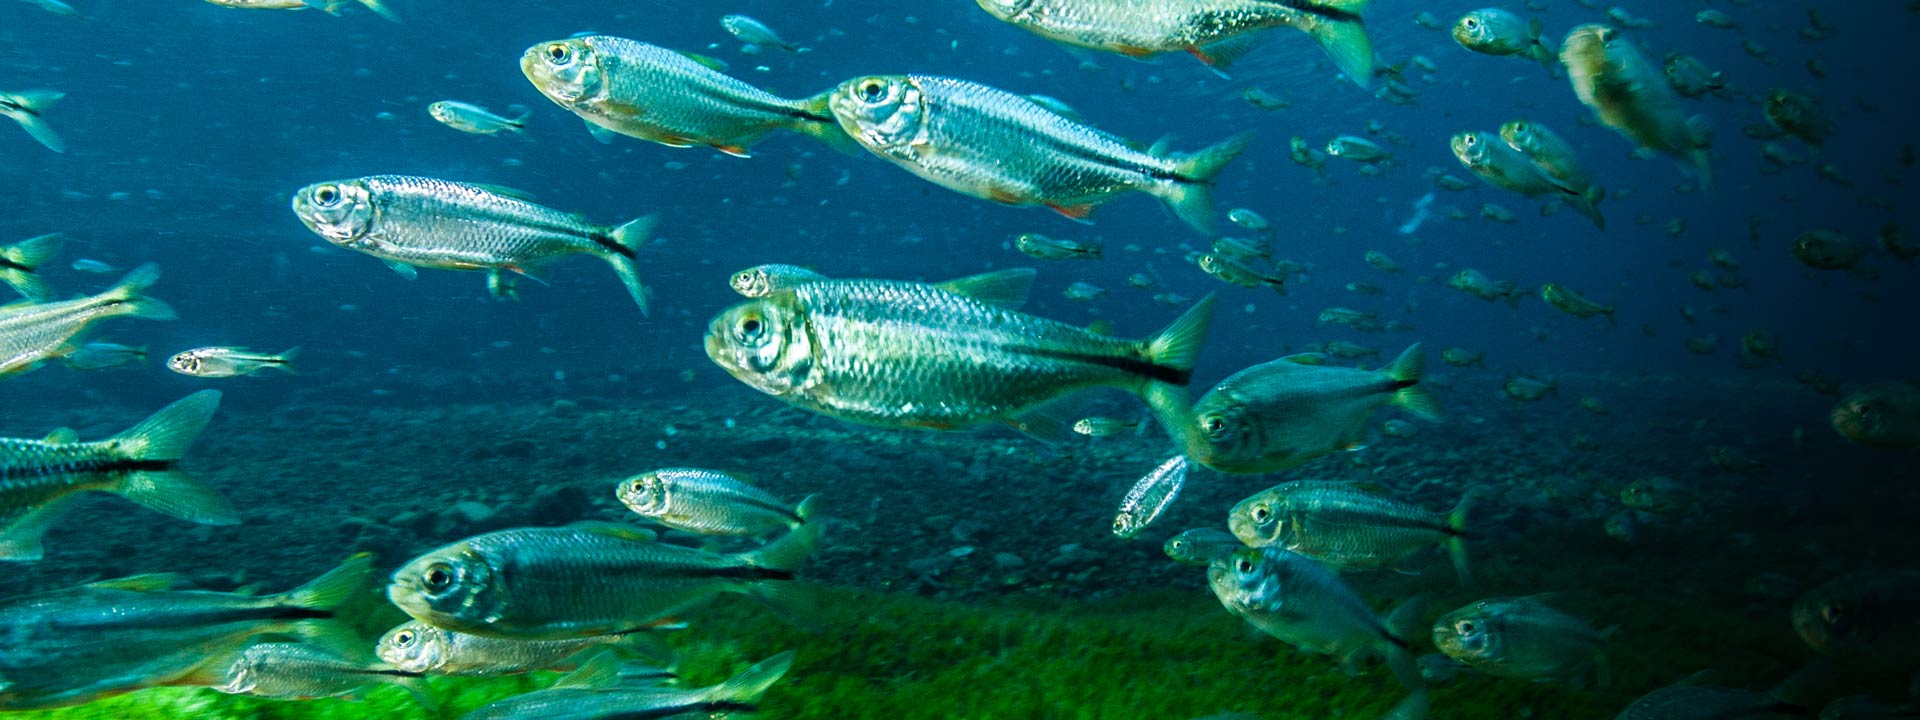 Mexican tetras from the book Texas Aquatic Science by Rudolph Rosen. Photo credit: Jennifer Idol, The Underwater Designer